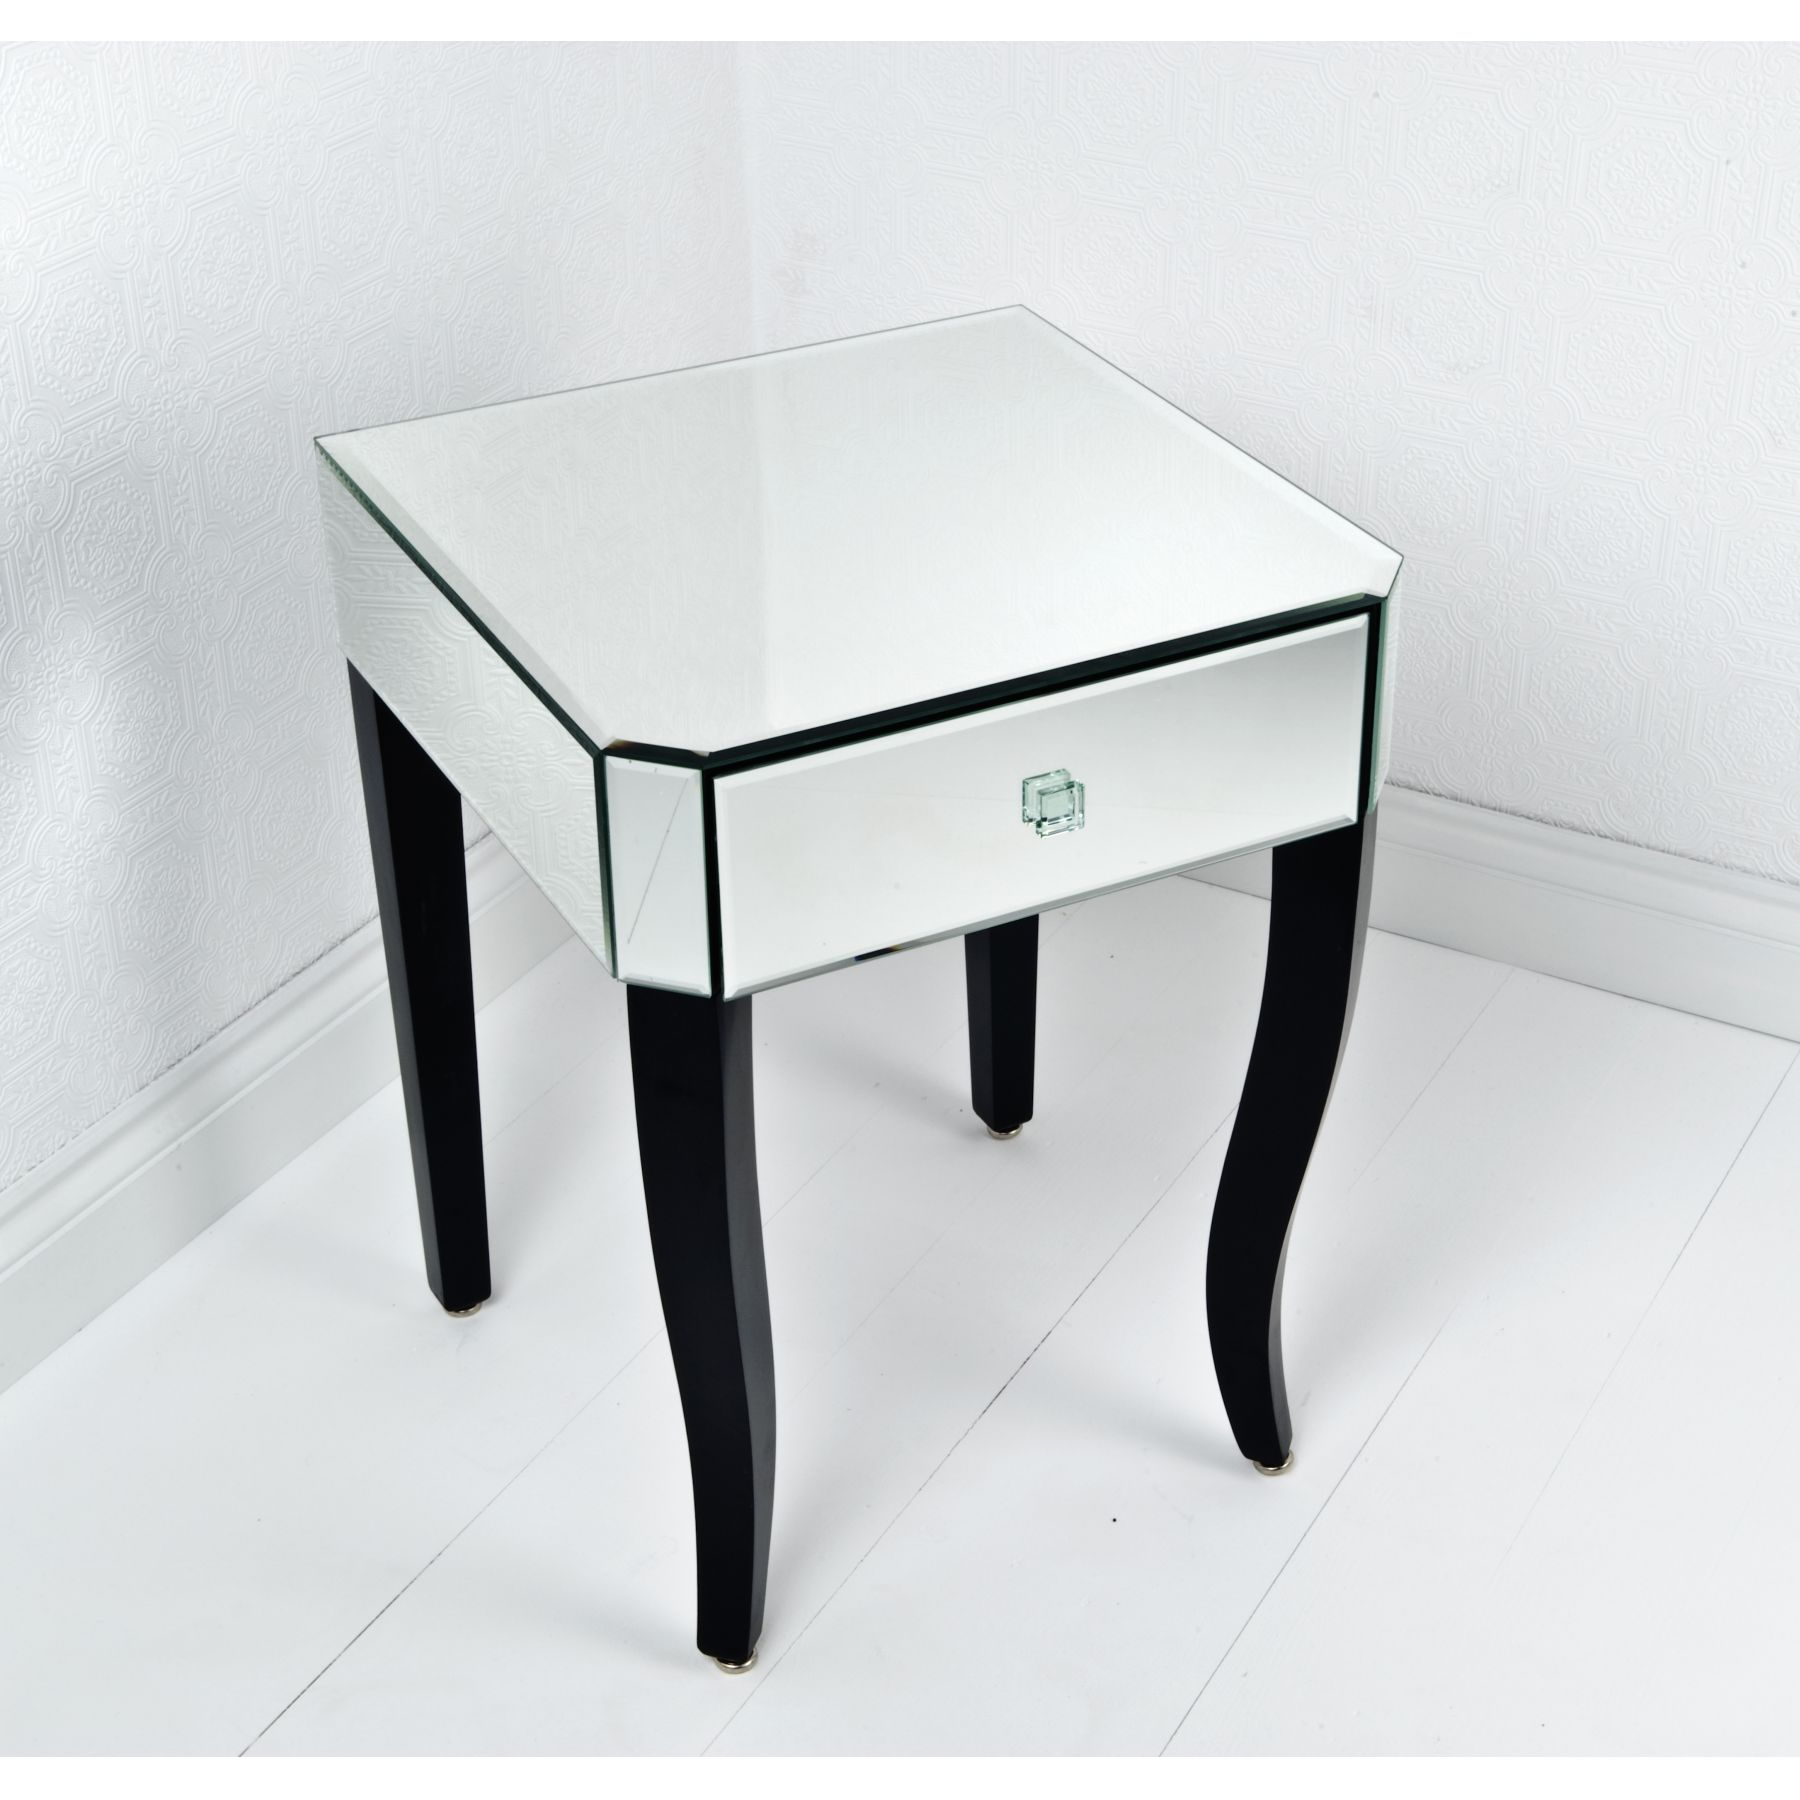 wedding table linens the fantastic unbelievable threshold mirrored nightstand nightstands target accent with drawer and black legs for home furniture ideas metal drum side